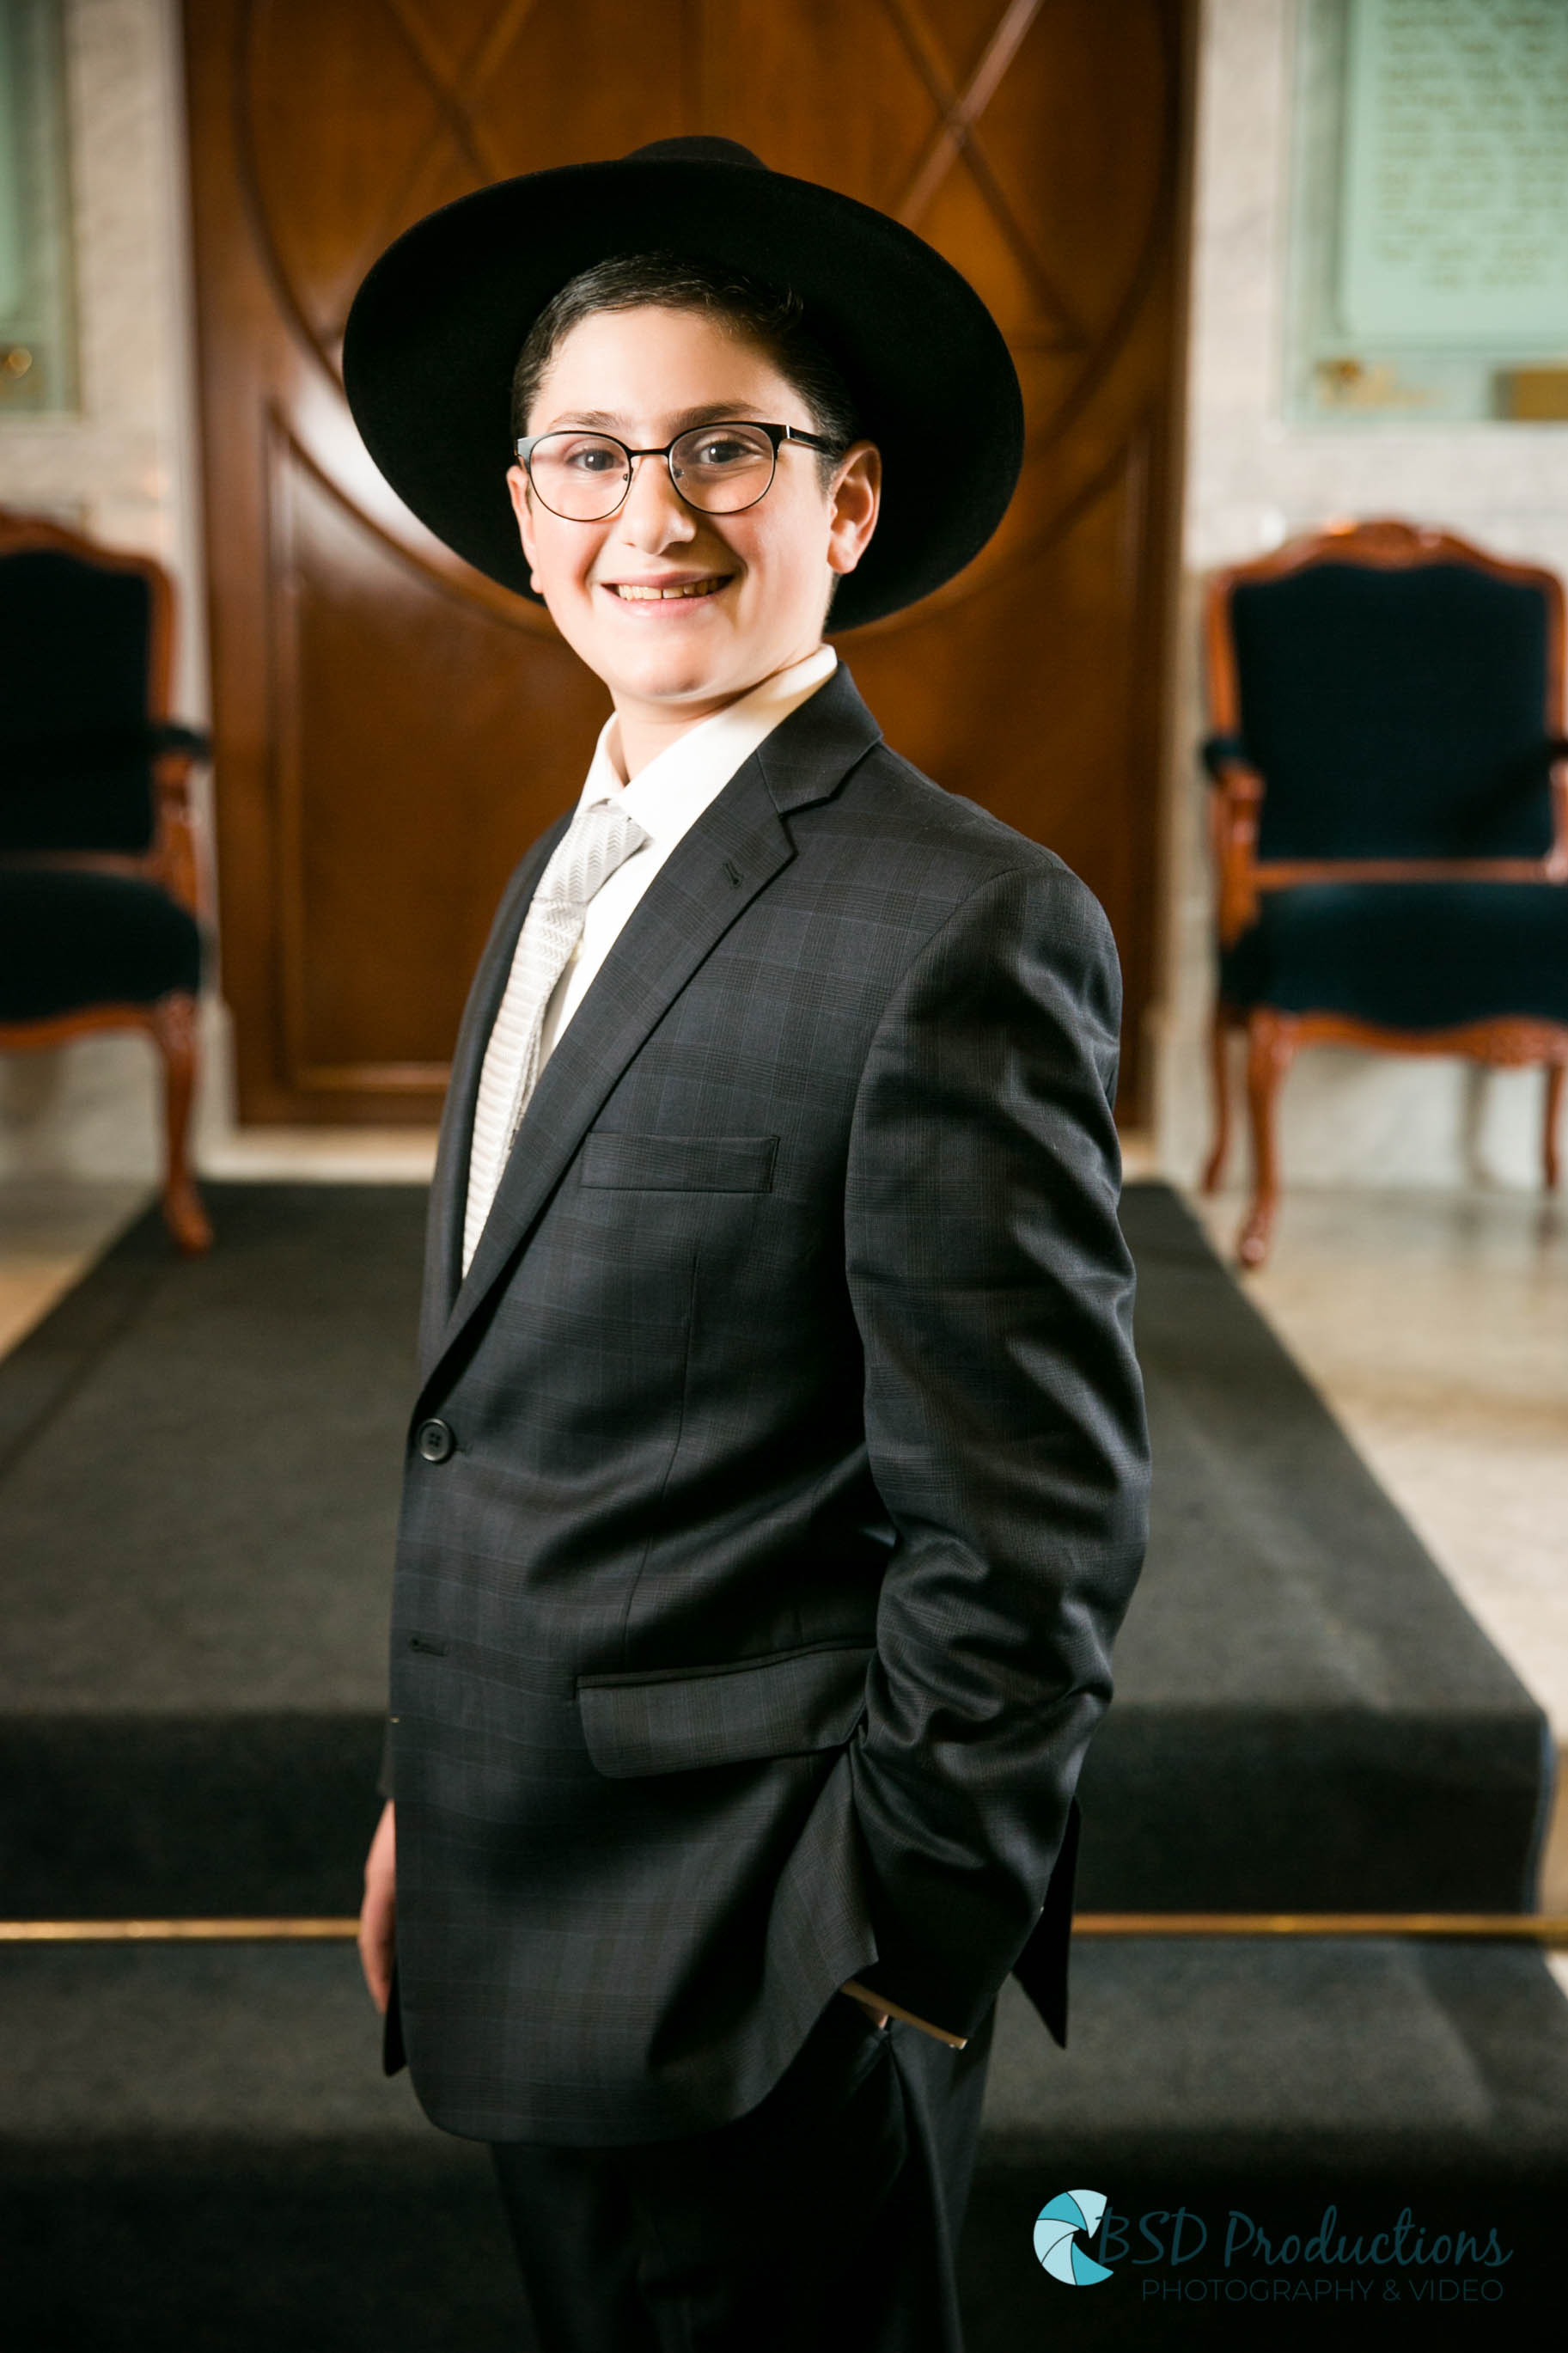 D_R_1117 Bar Mitzvah – BSD Productions Photography